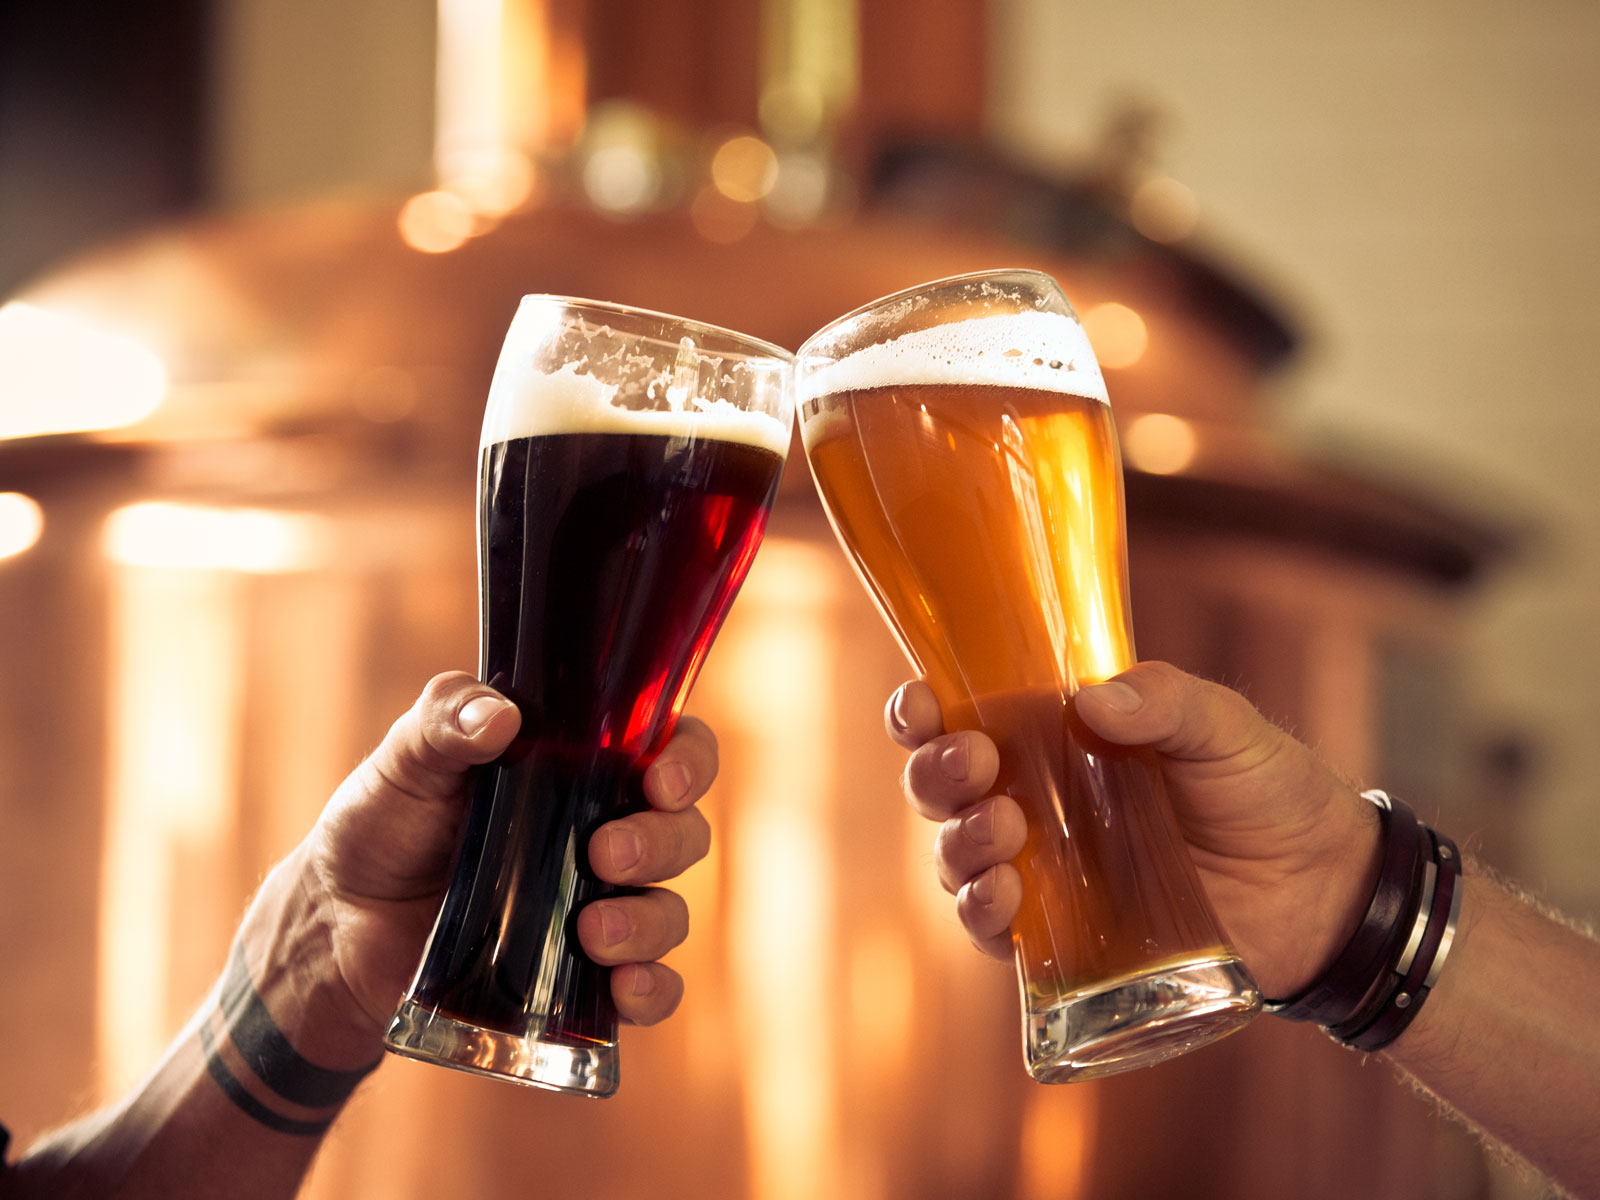 California Now Has 1,000 Breweries, More Than Any Other State